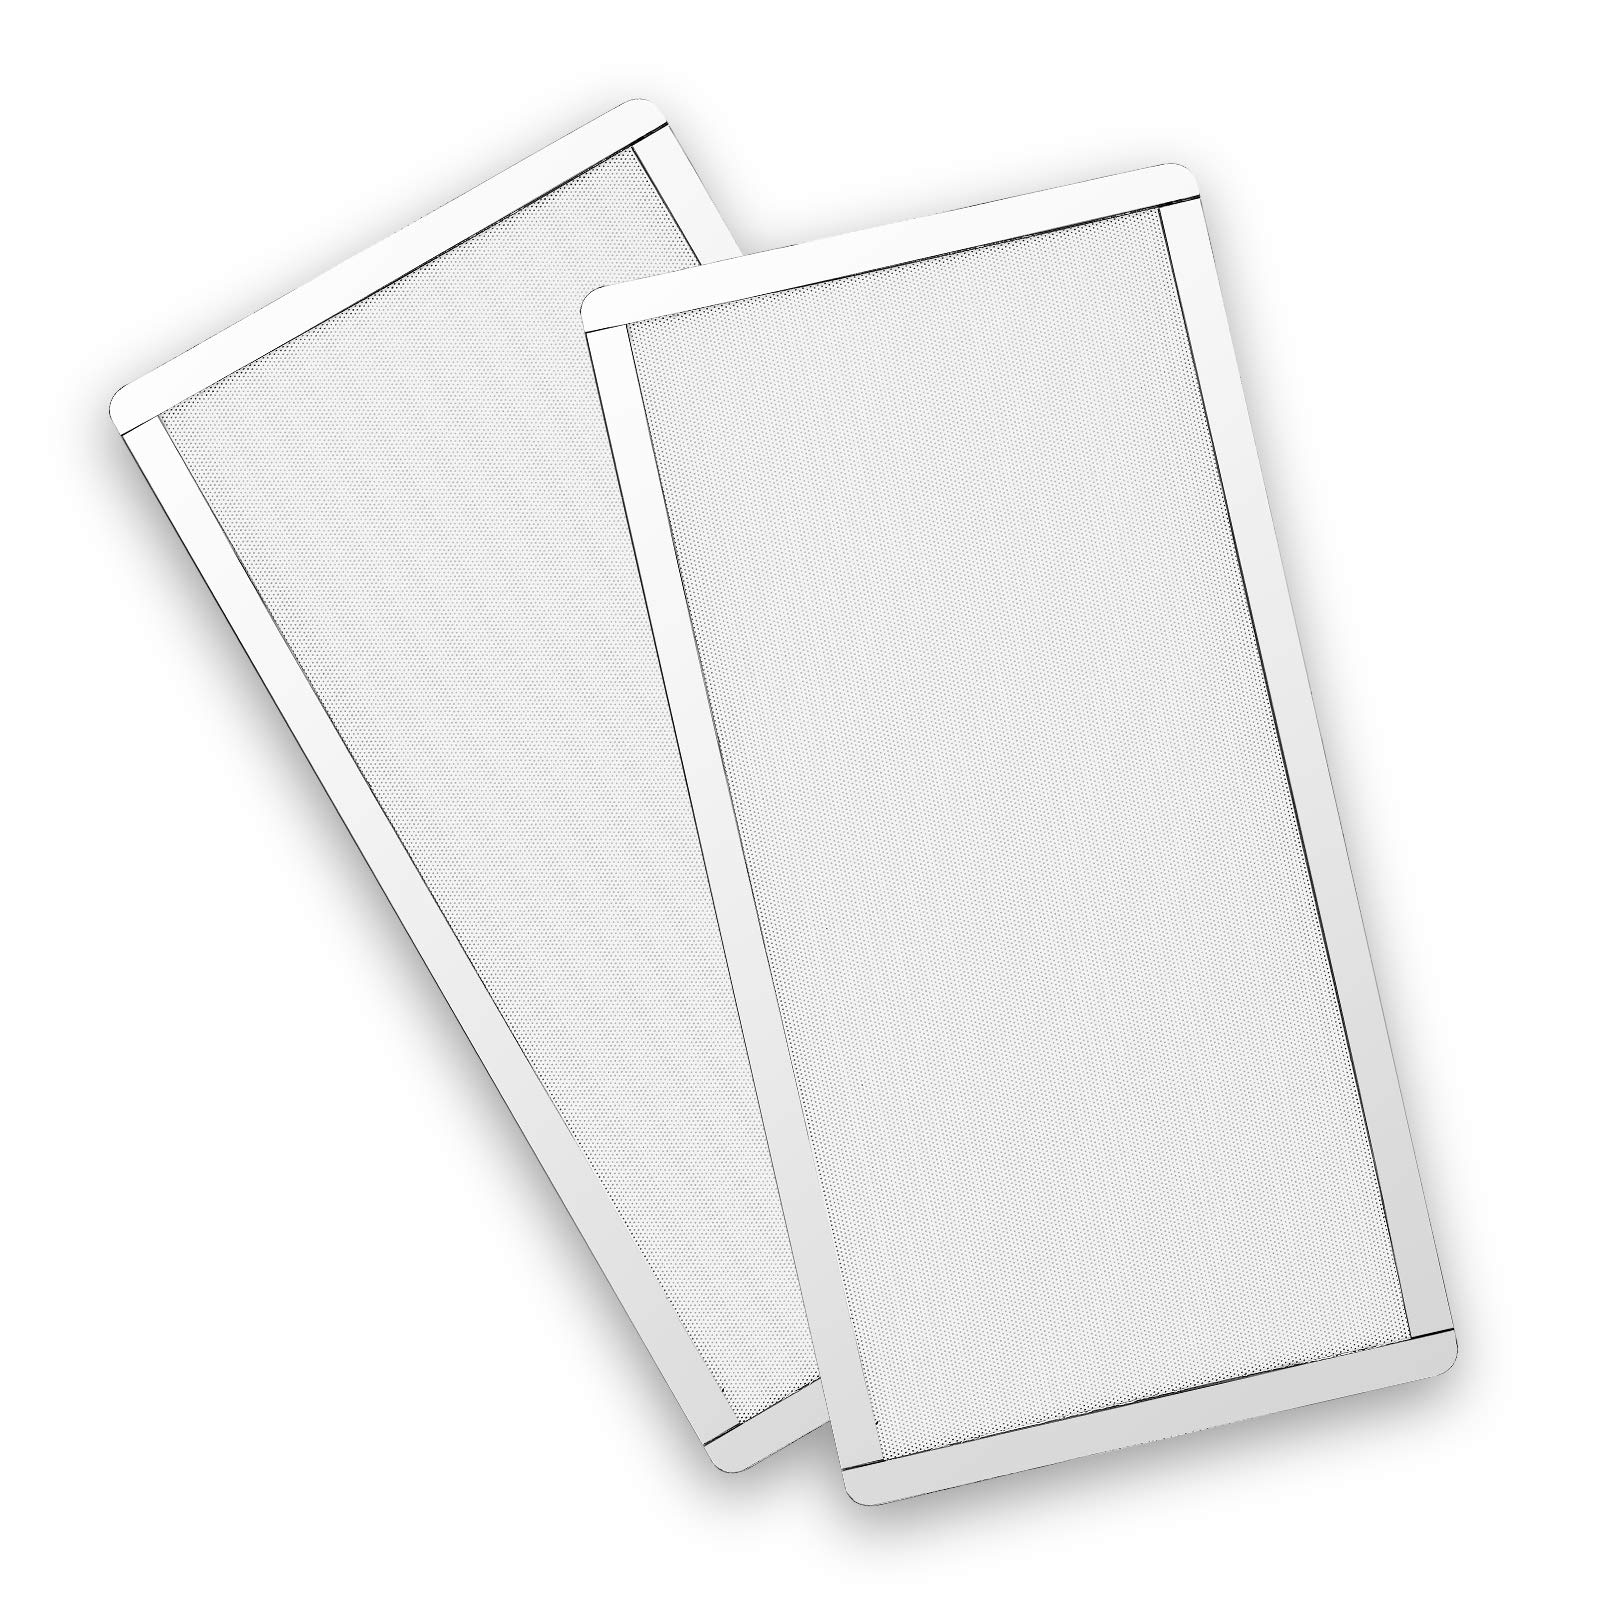 287mm 140mm x 2 PC Fan Dust Mesh Filter PVC Computer PC Case Dust Proof Filter Cover Magnetic White 2-Pack